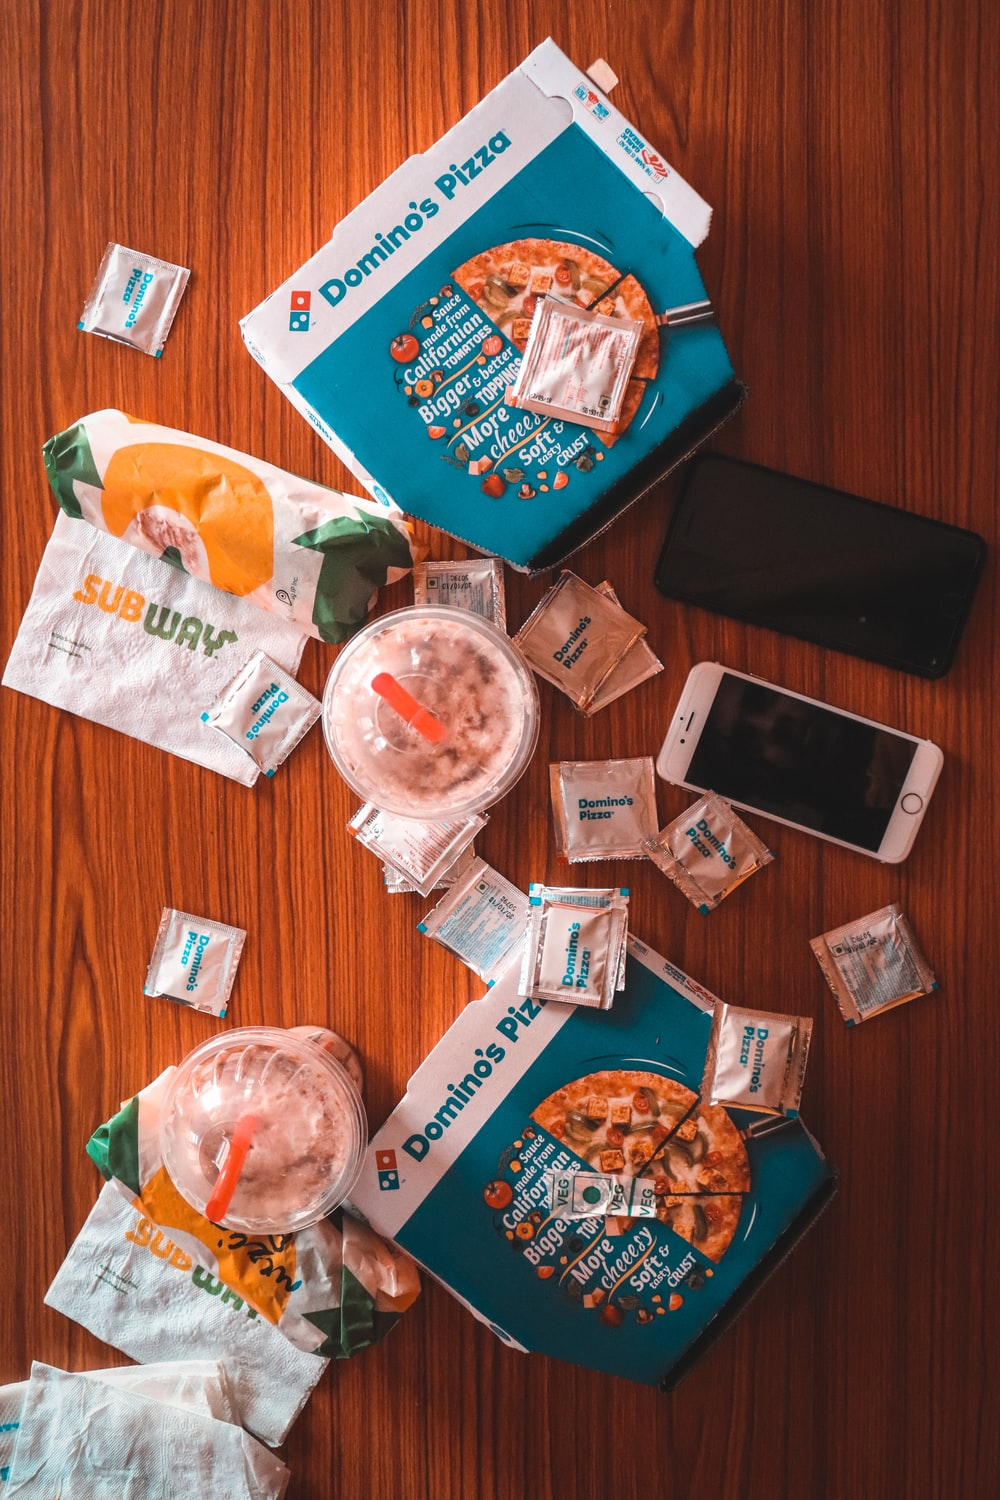 pizza and sauce packs beside iPhone on table